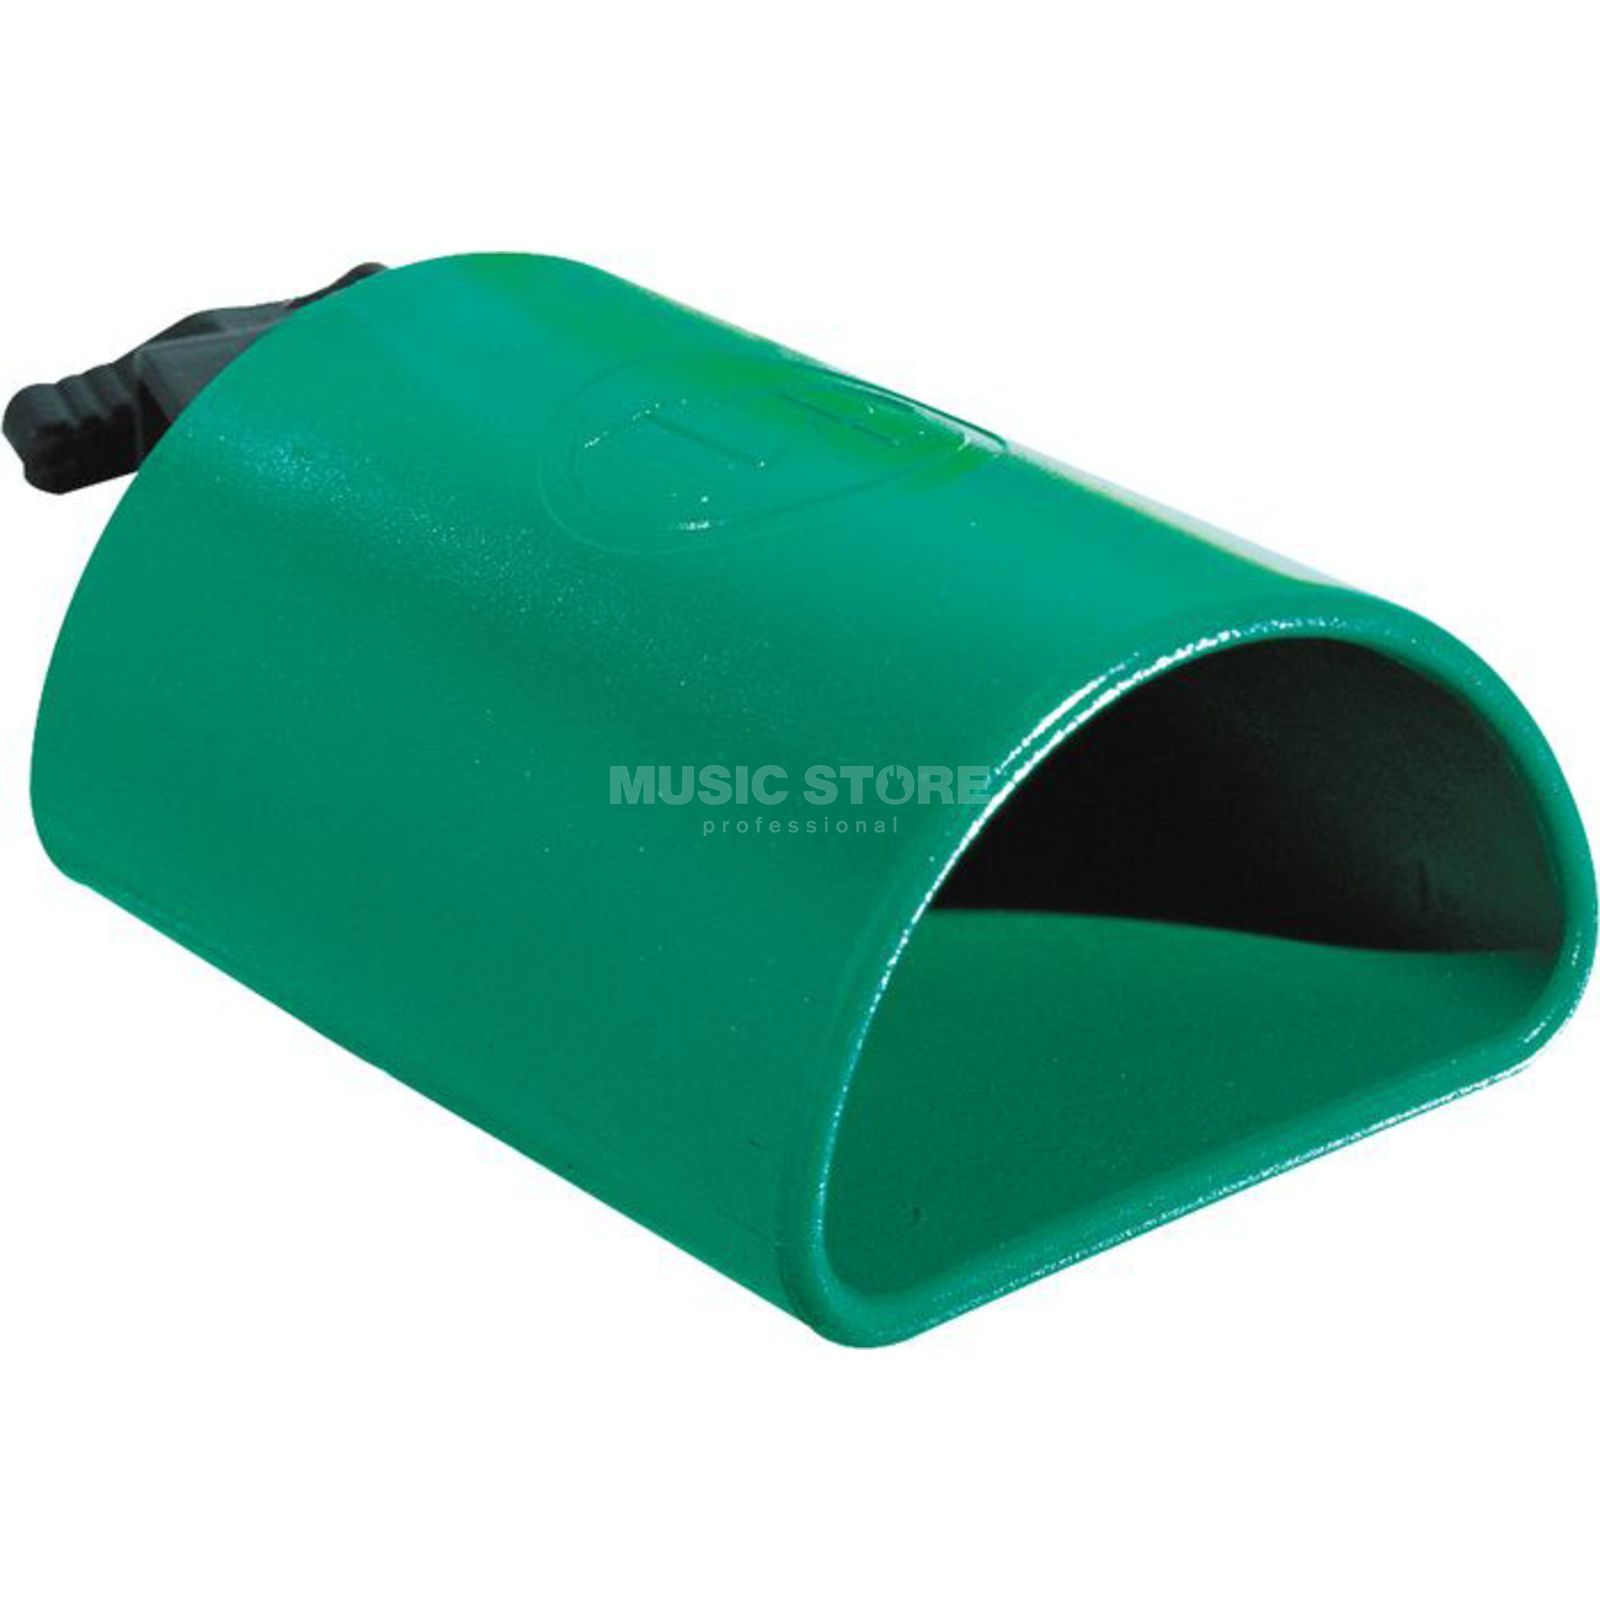 Latin Percussion Blast Block LP1307, green Produktbild